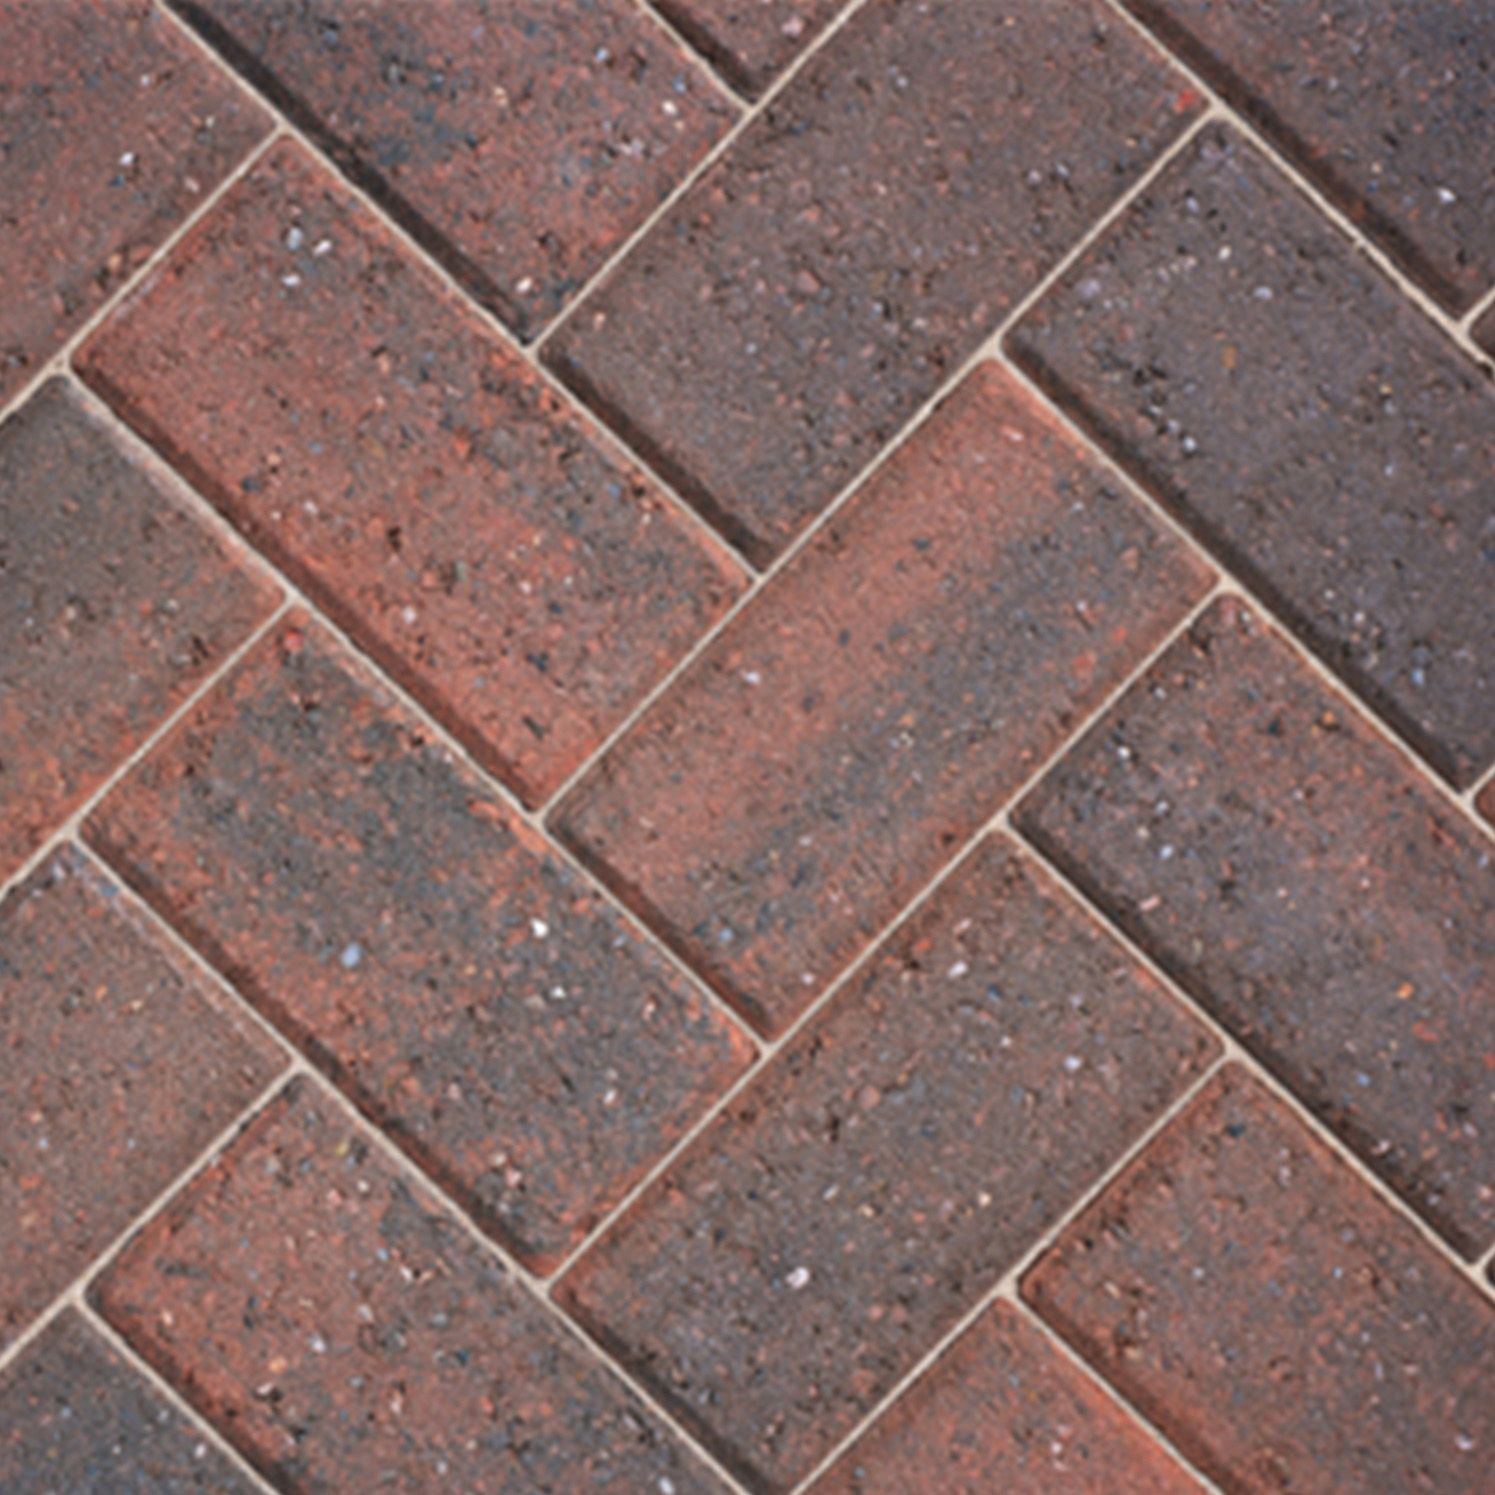 brindle europa block paving (l)200mm (w)100mm, pack of 404, 8.08 m² | YTUYAMQ